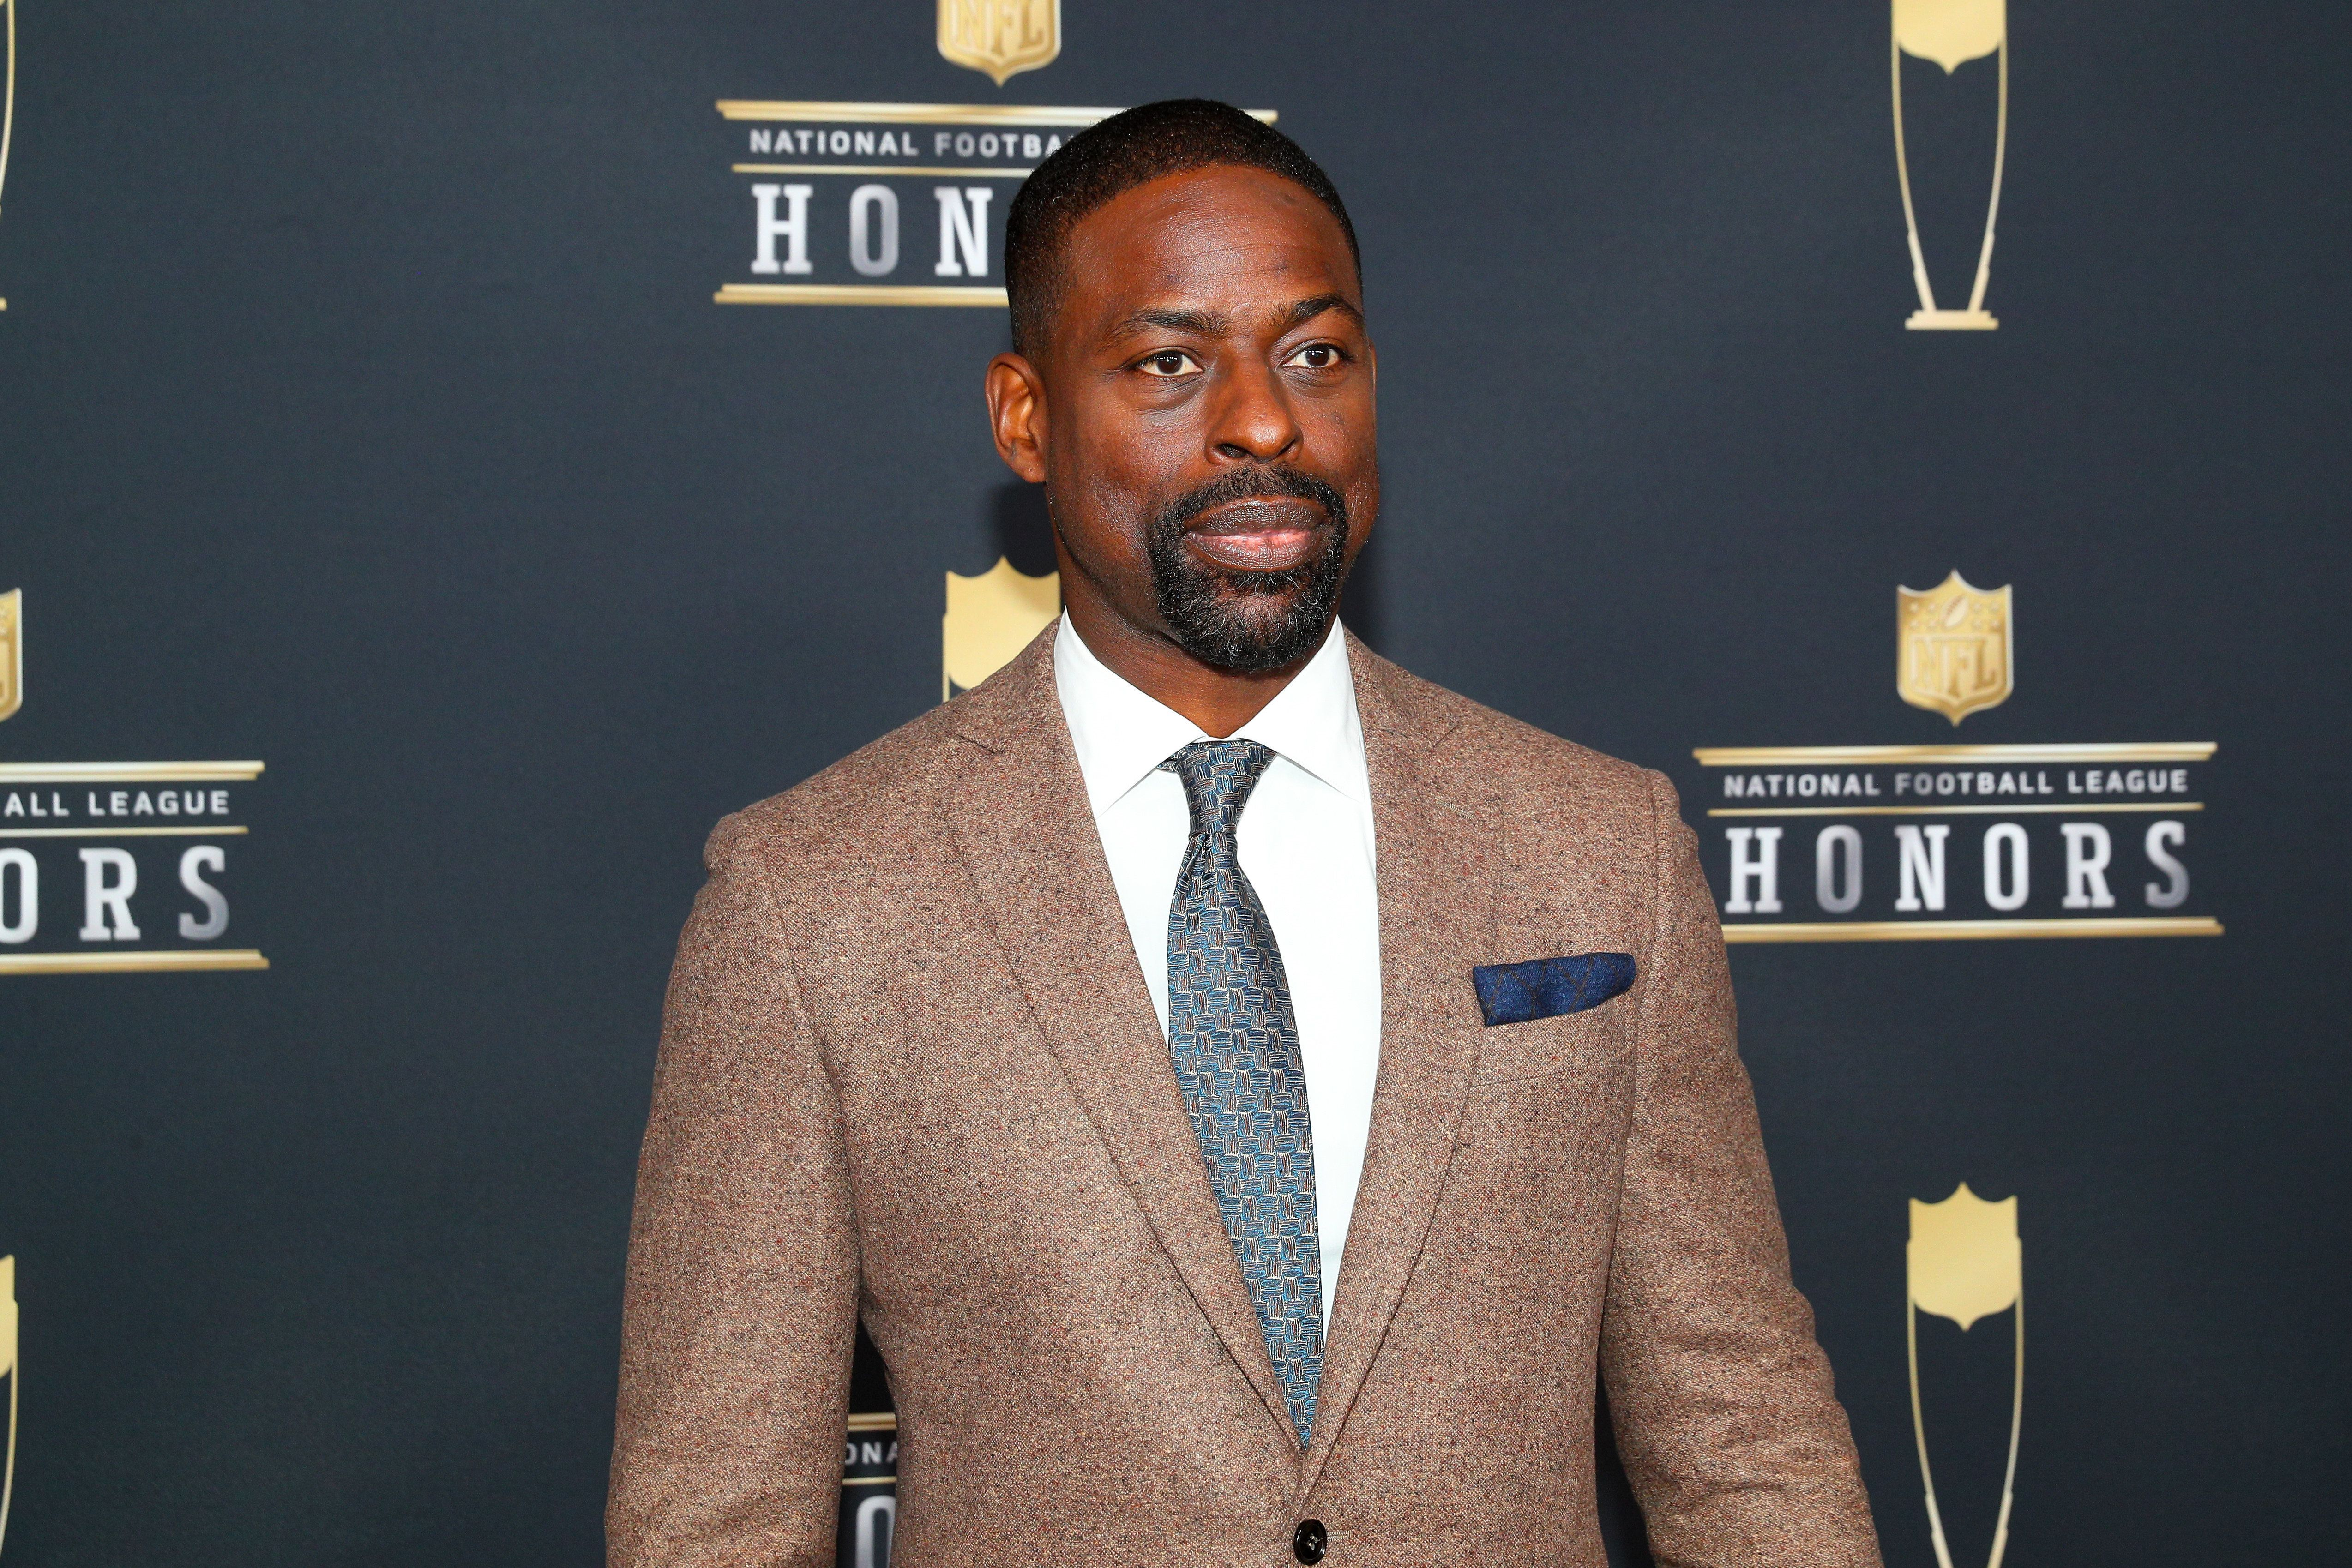 MINNEAPOLIS, MN - FEBRUARY 03:   Actor Sterling K Brown poses for Photographs on the Red Carpet at NFL Honors during Super Bowl LII week on February 3, 2018, at Northrop at the University of Minnesota in Minneapolis, MN.  (Photo by Rich Graessle/Icon Sportswire via Getty Images)